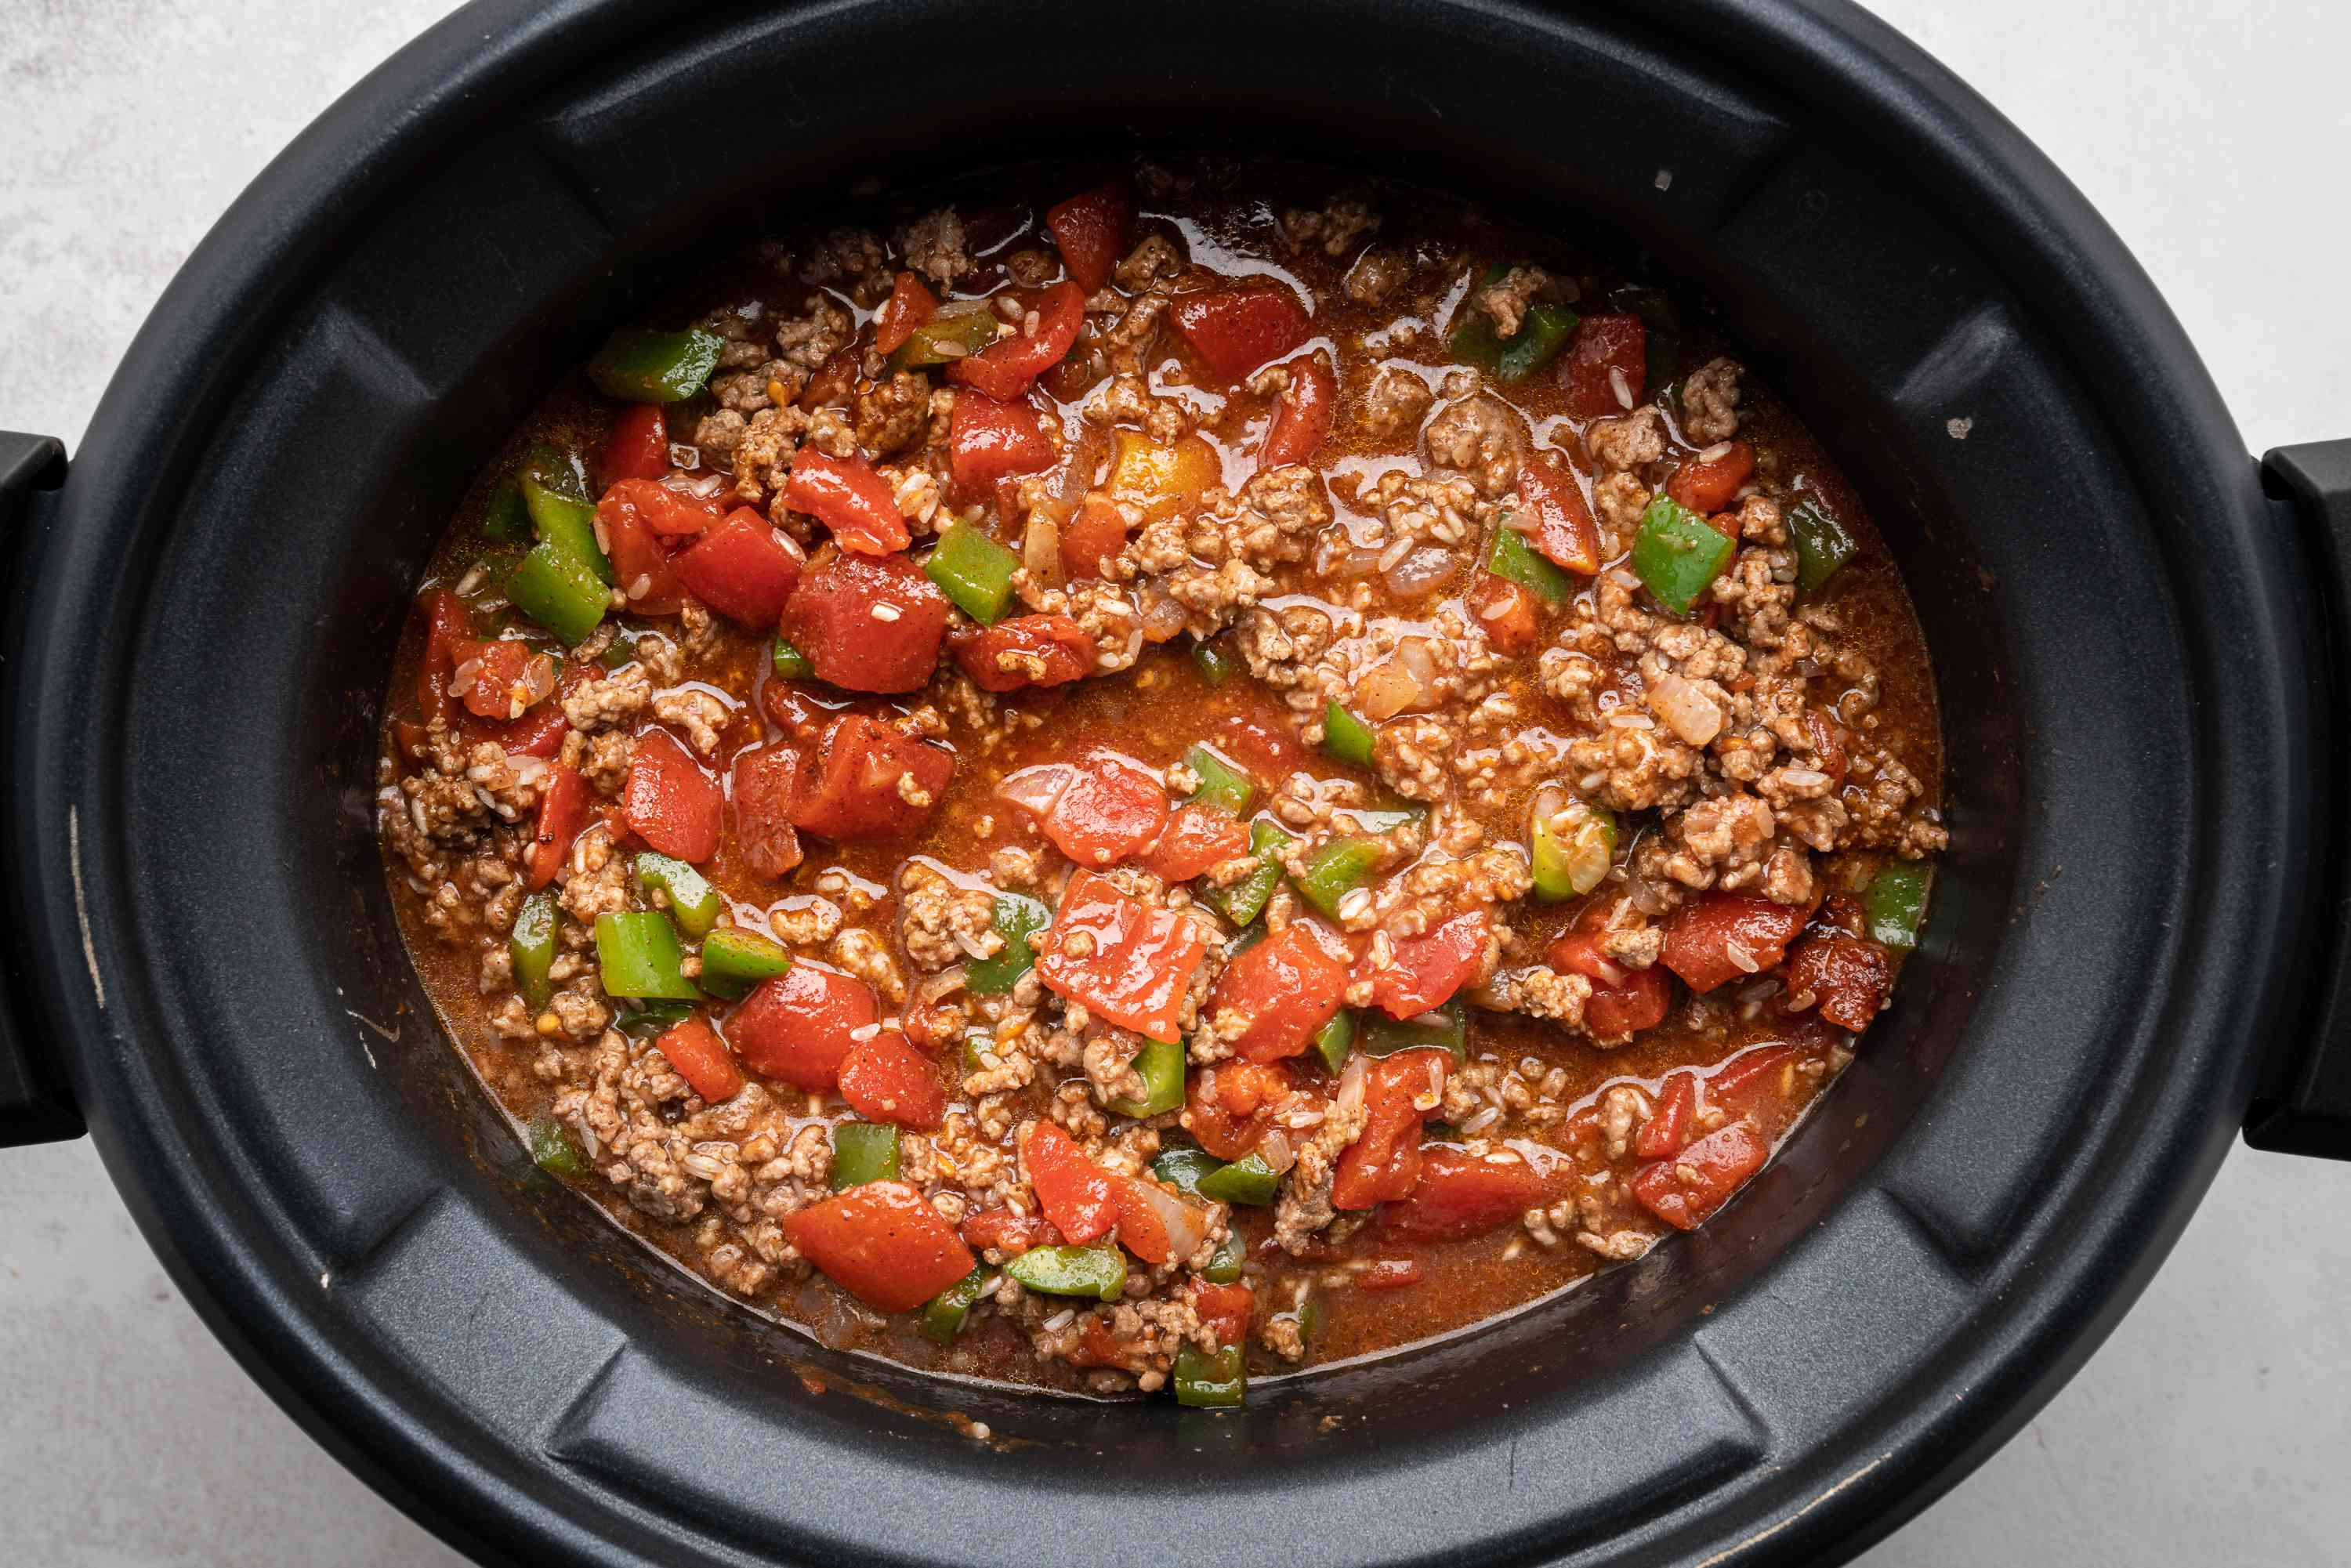 tomatoes, tomato sauce, chili powder, salt, Worcestershire sauce, rice, and water with the beef mixture in a crock pot